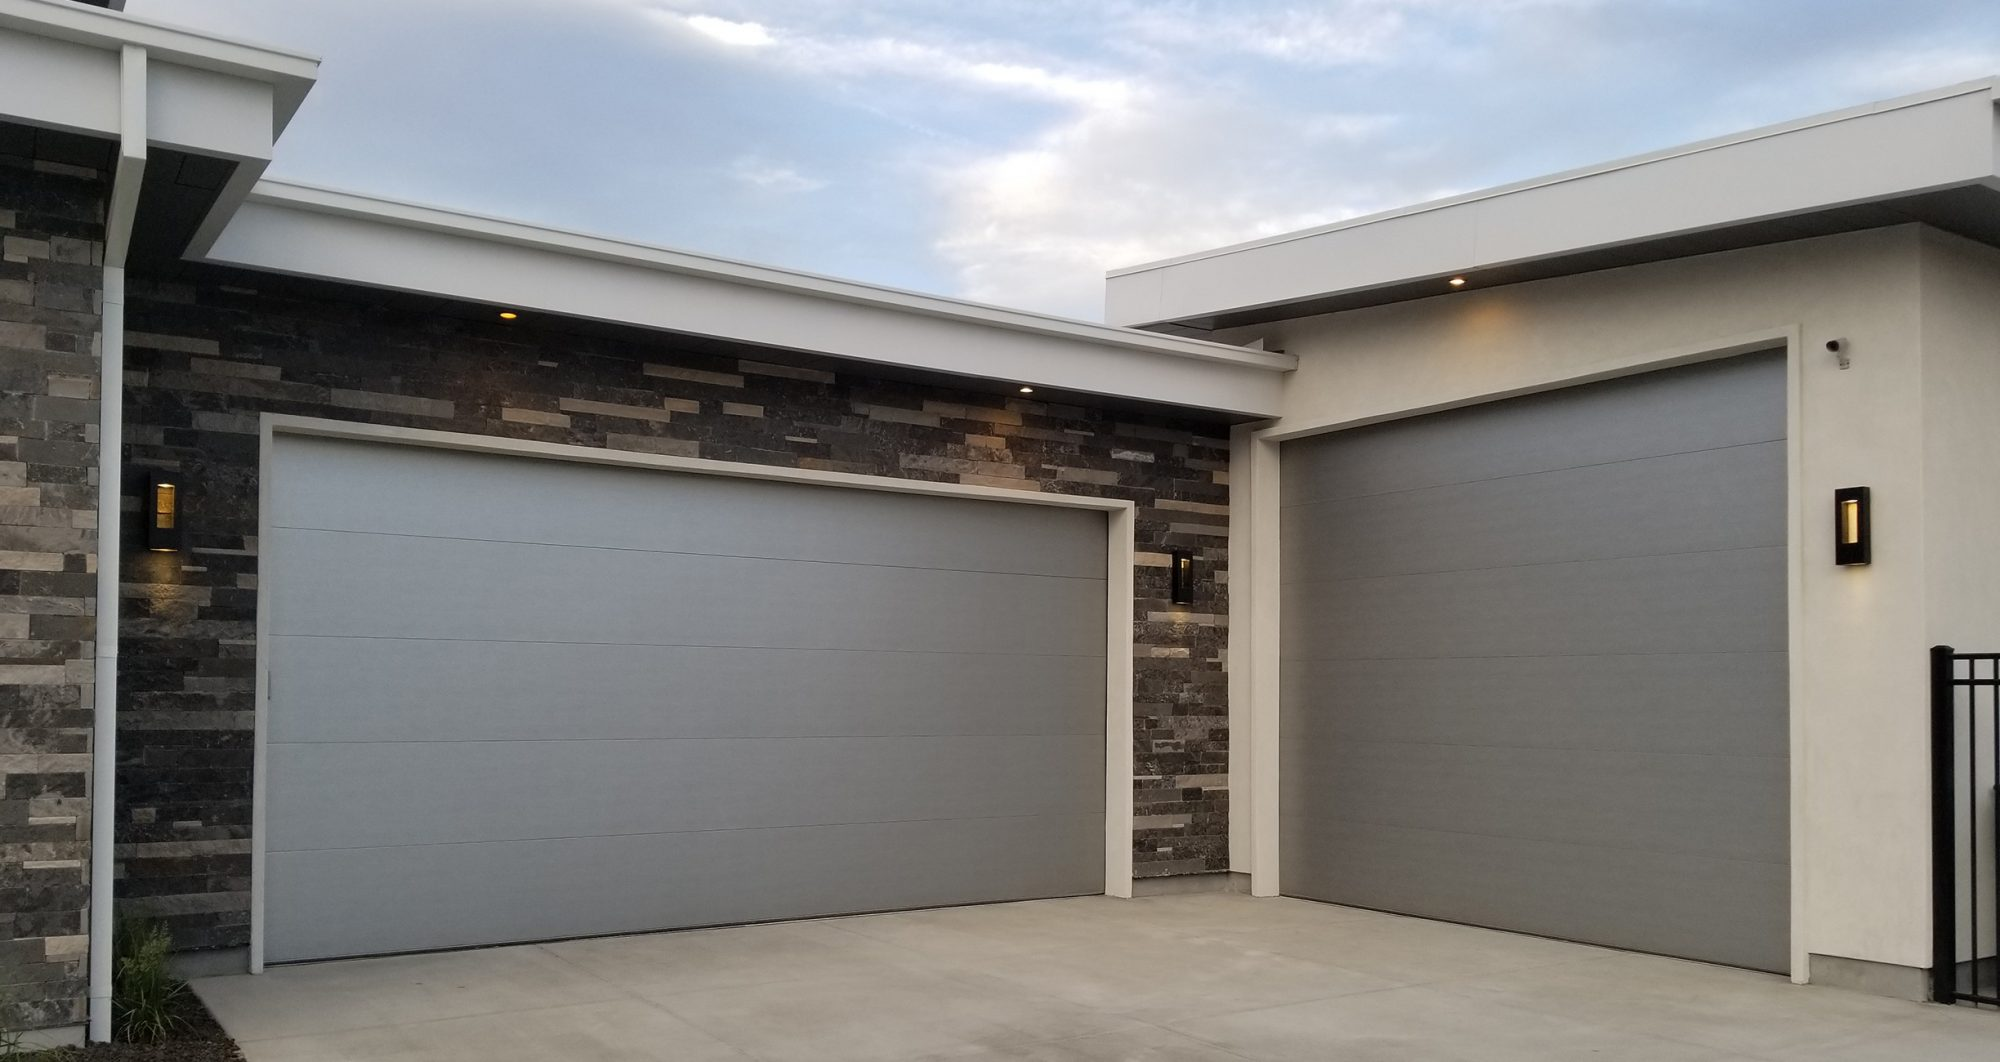 Steel Garage Doors Vs Aluminum Garage Doors? Which Material is Best?